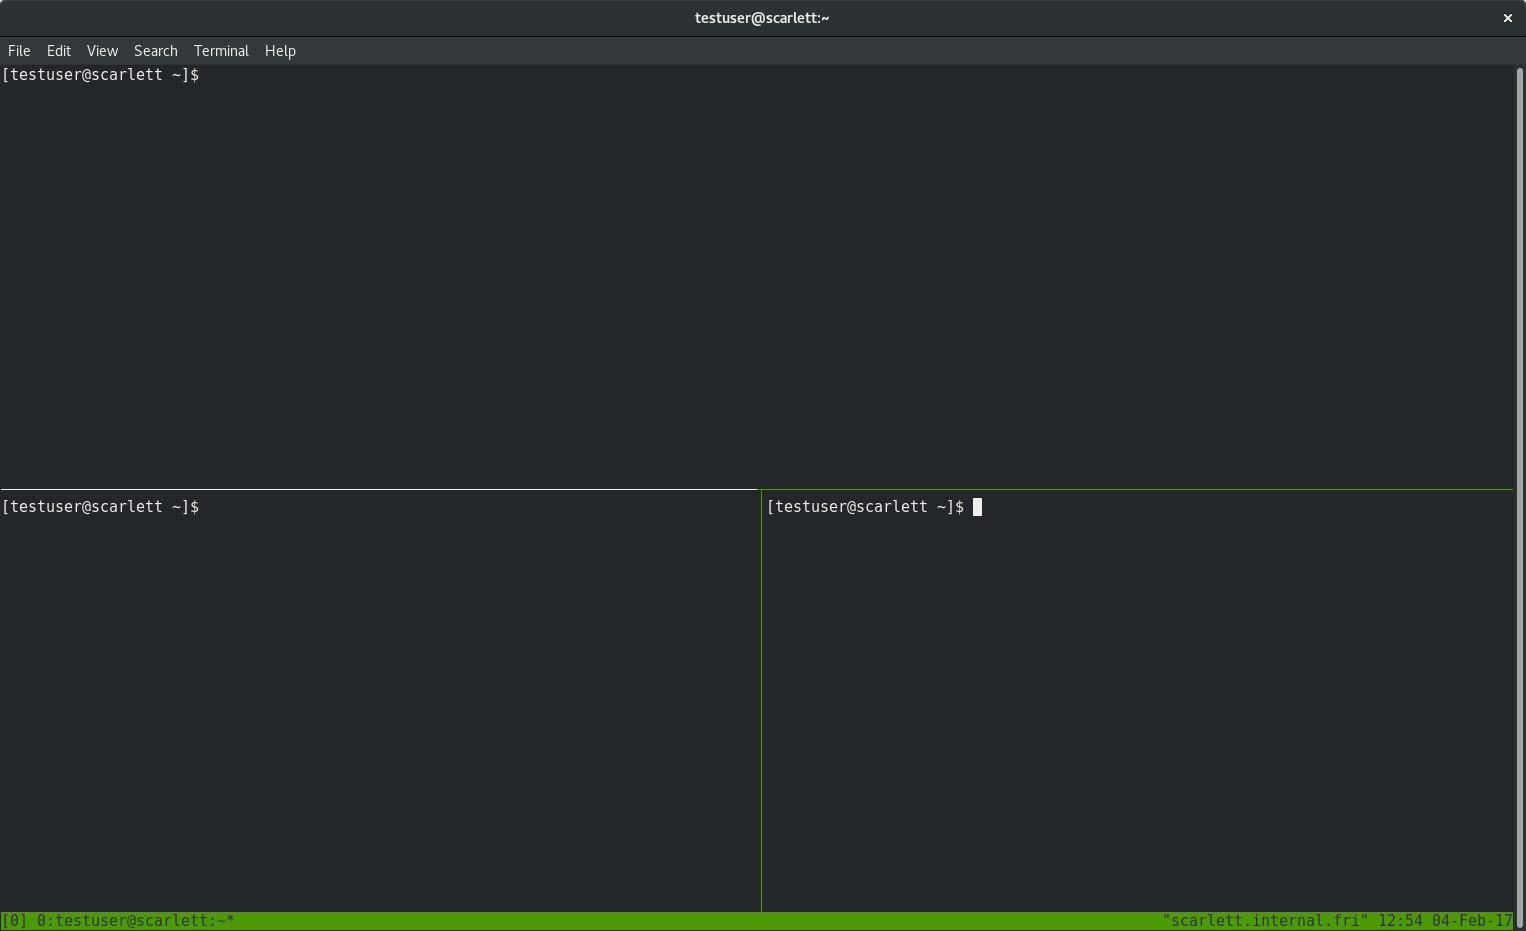 tmux window with three panes